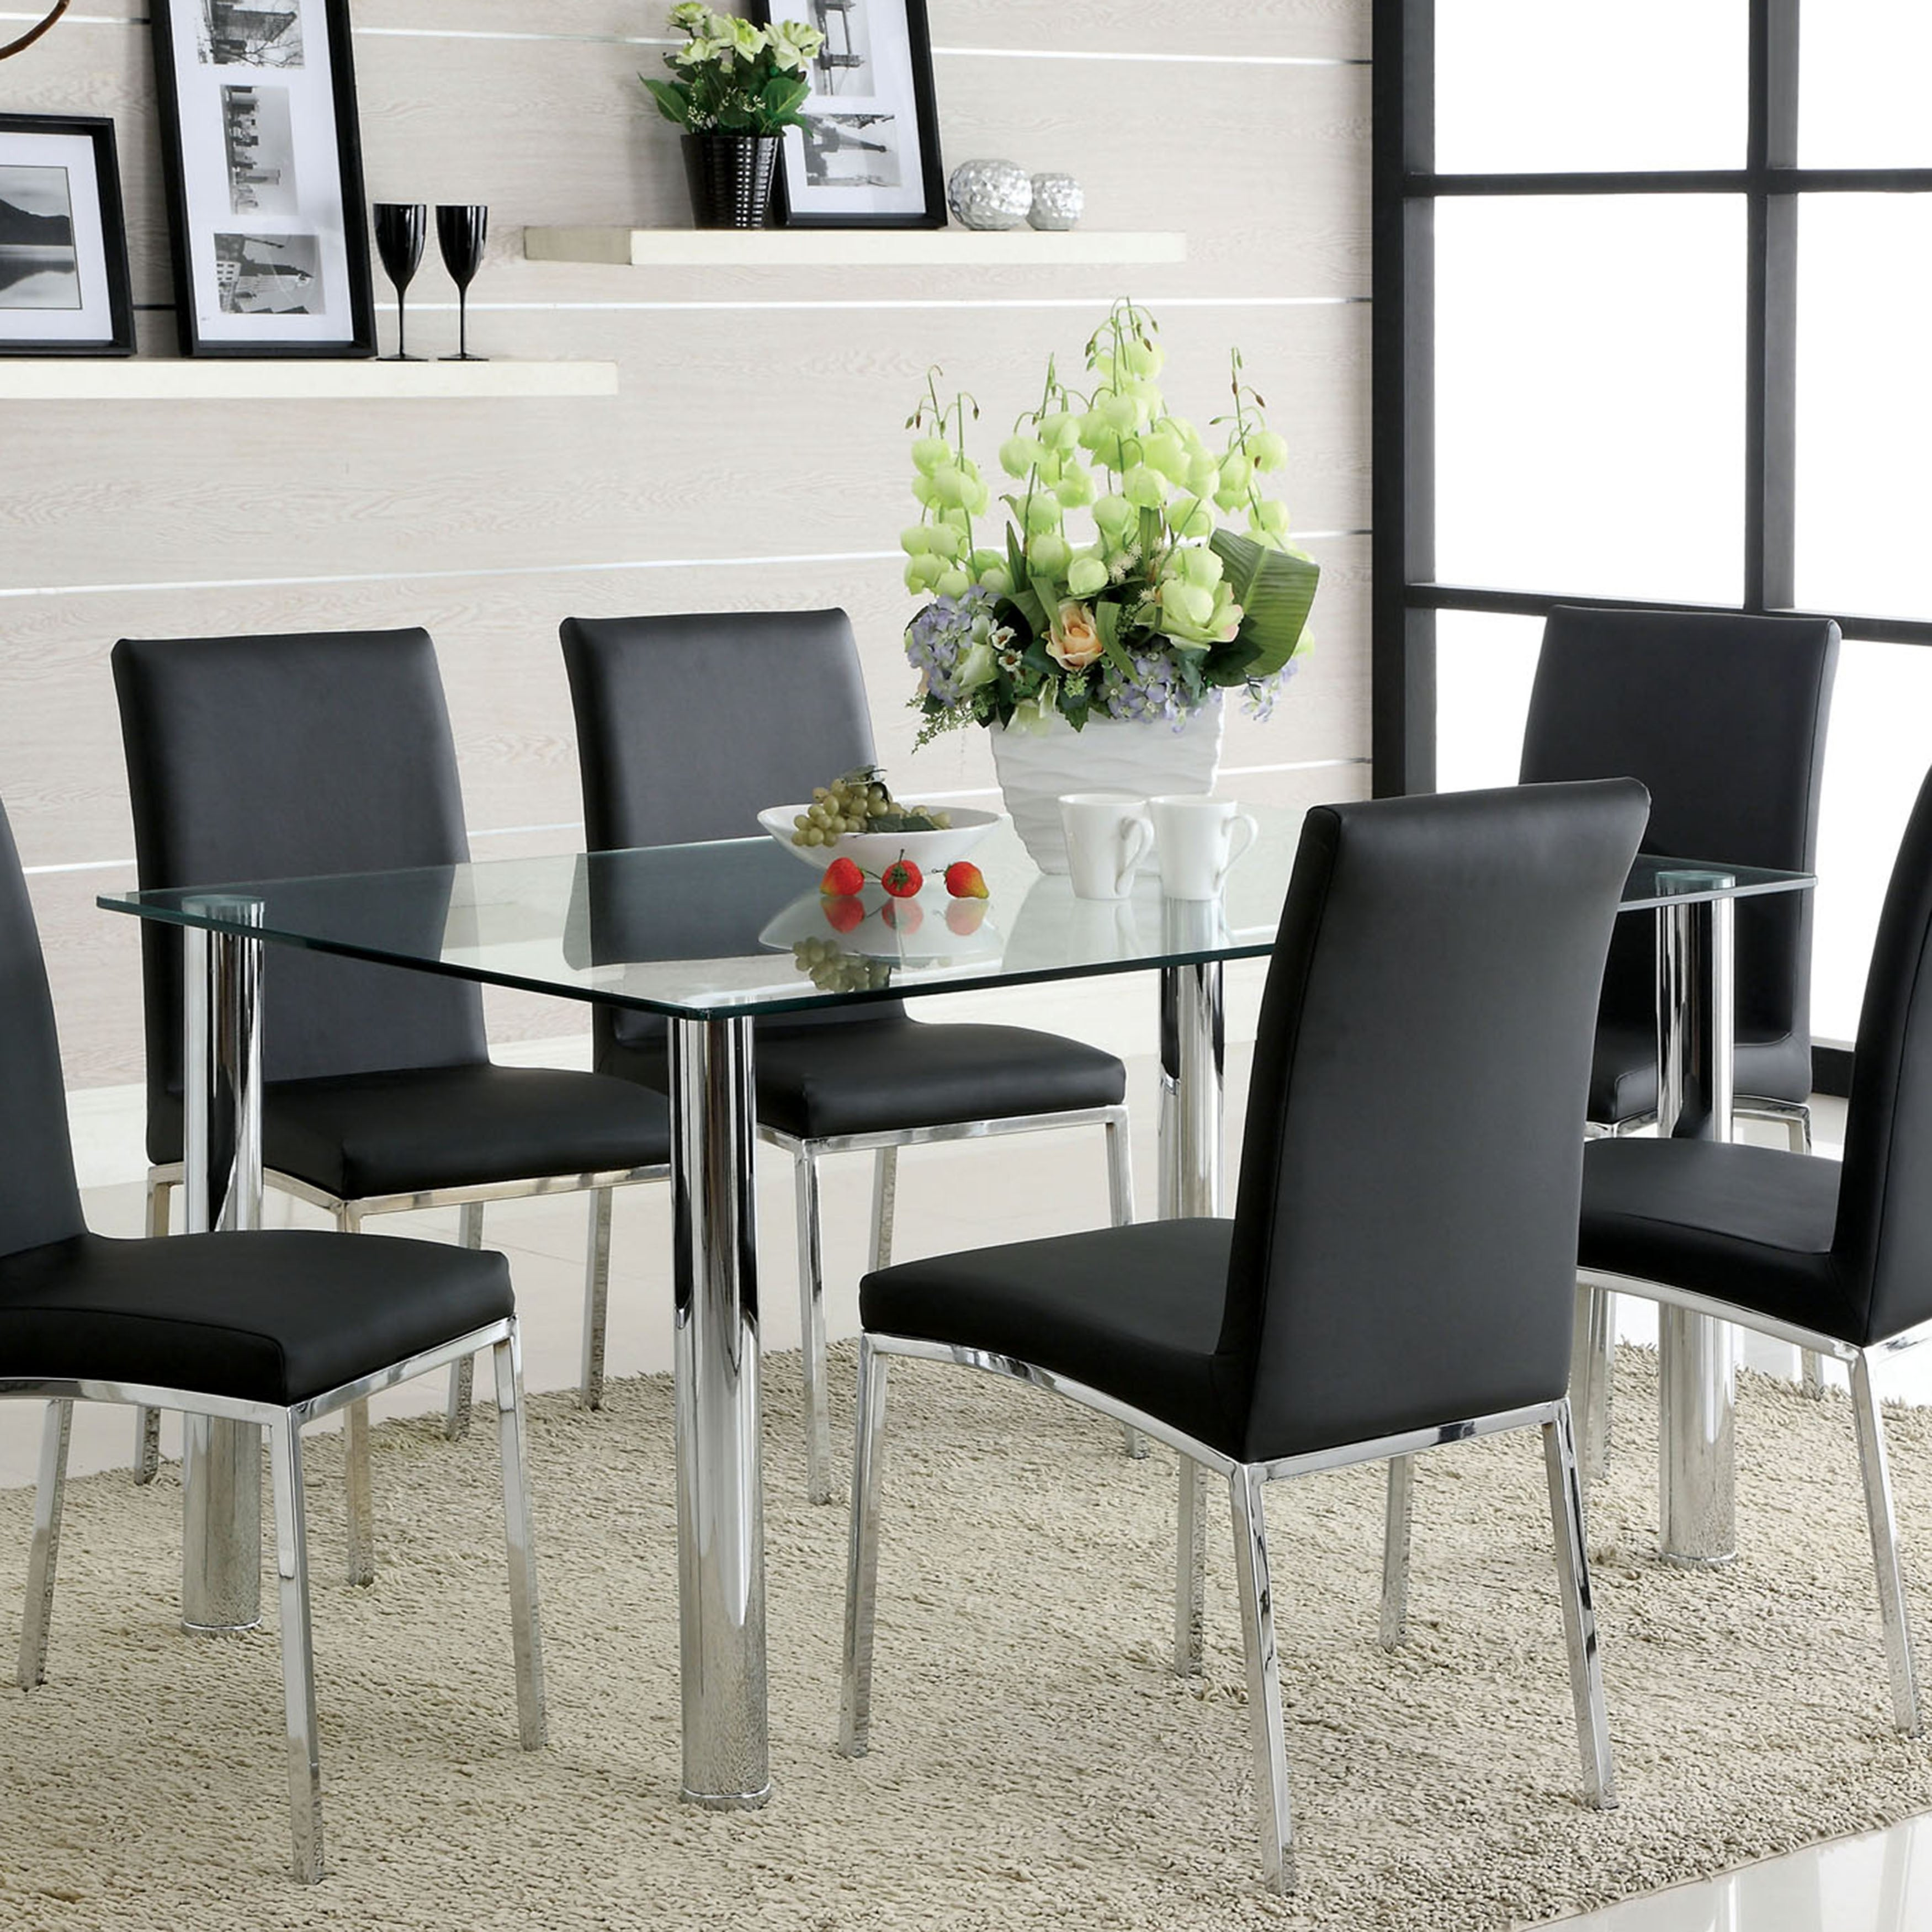 Furniture Of America Arden 7 Piece Contemporary Dining Set Overstock 6521218